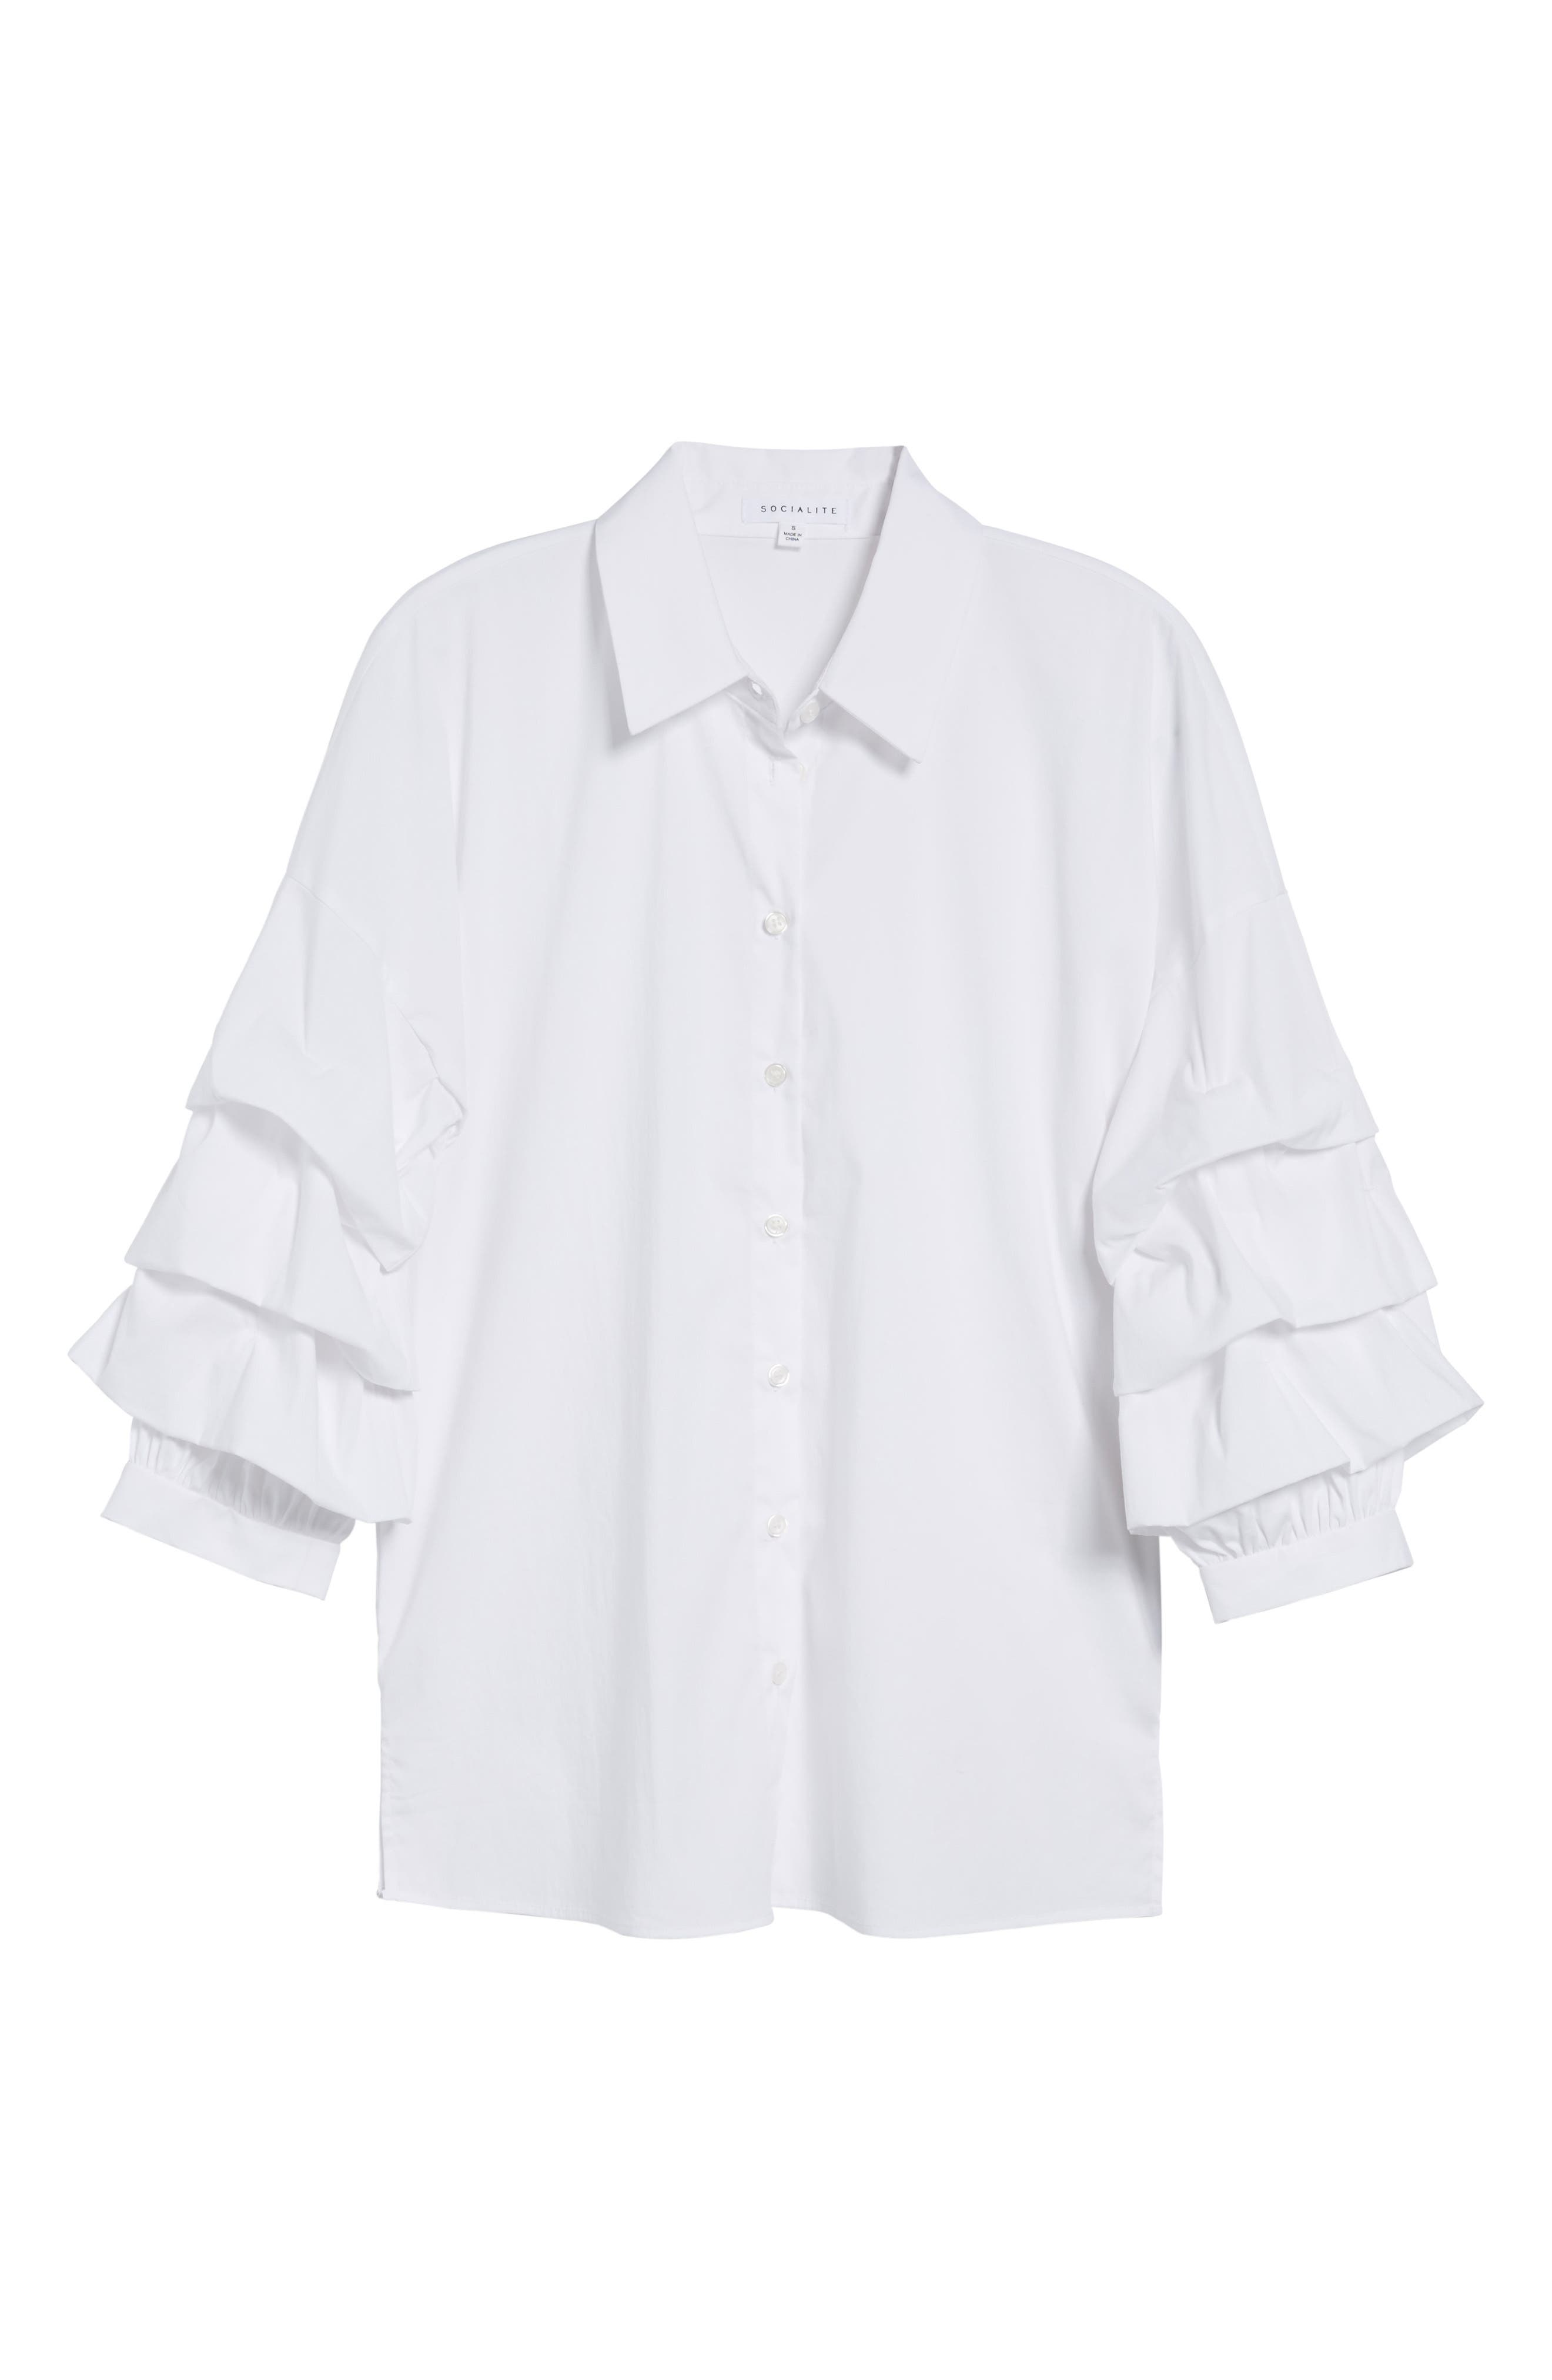 Ruched Sleeve Shirt,                             Alternate thumbnail 6, color,                             White